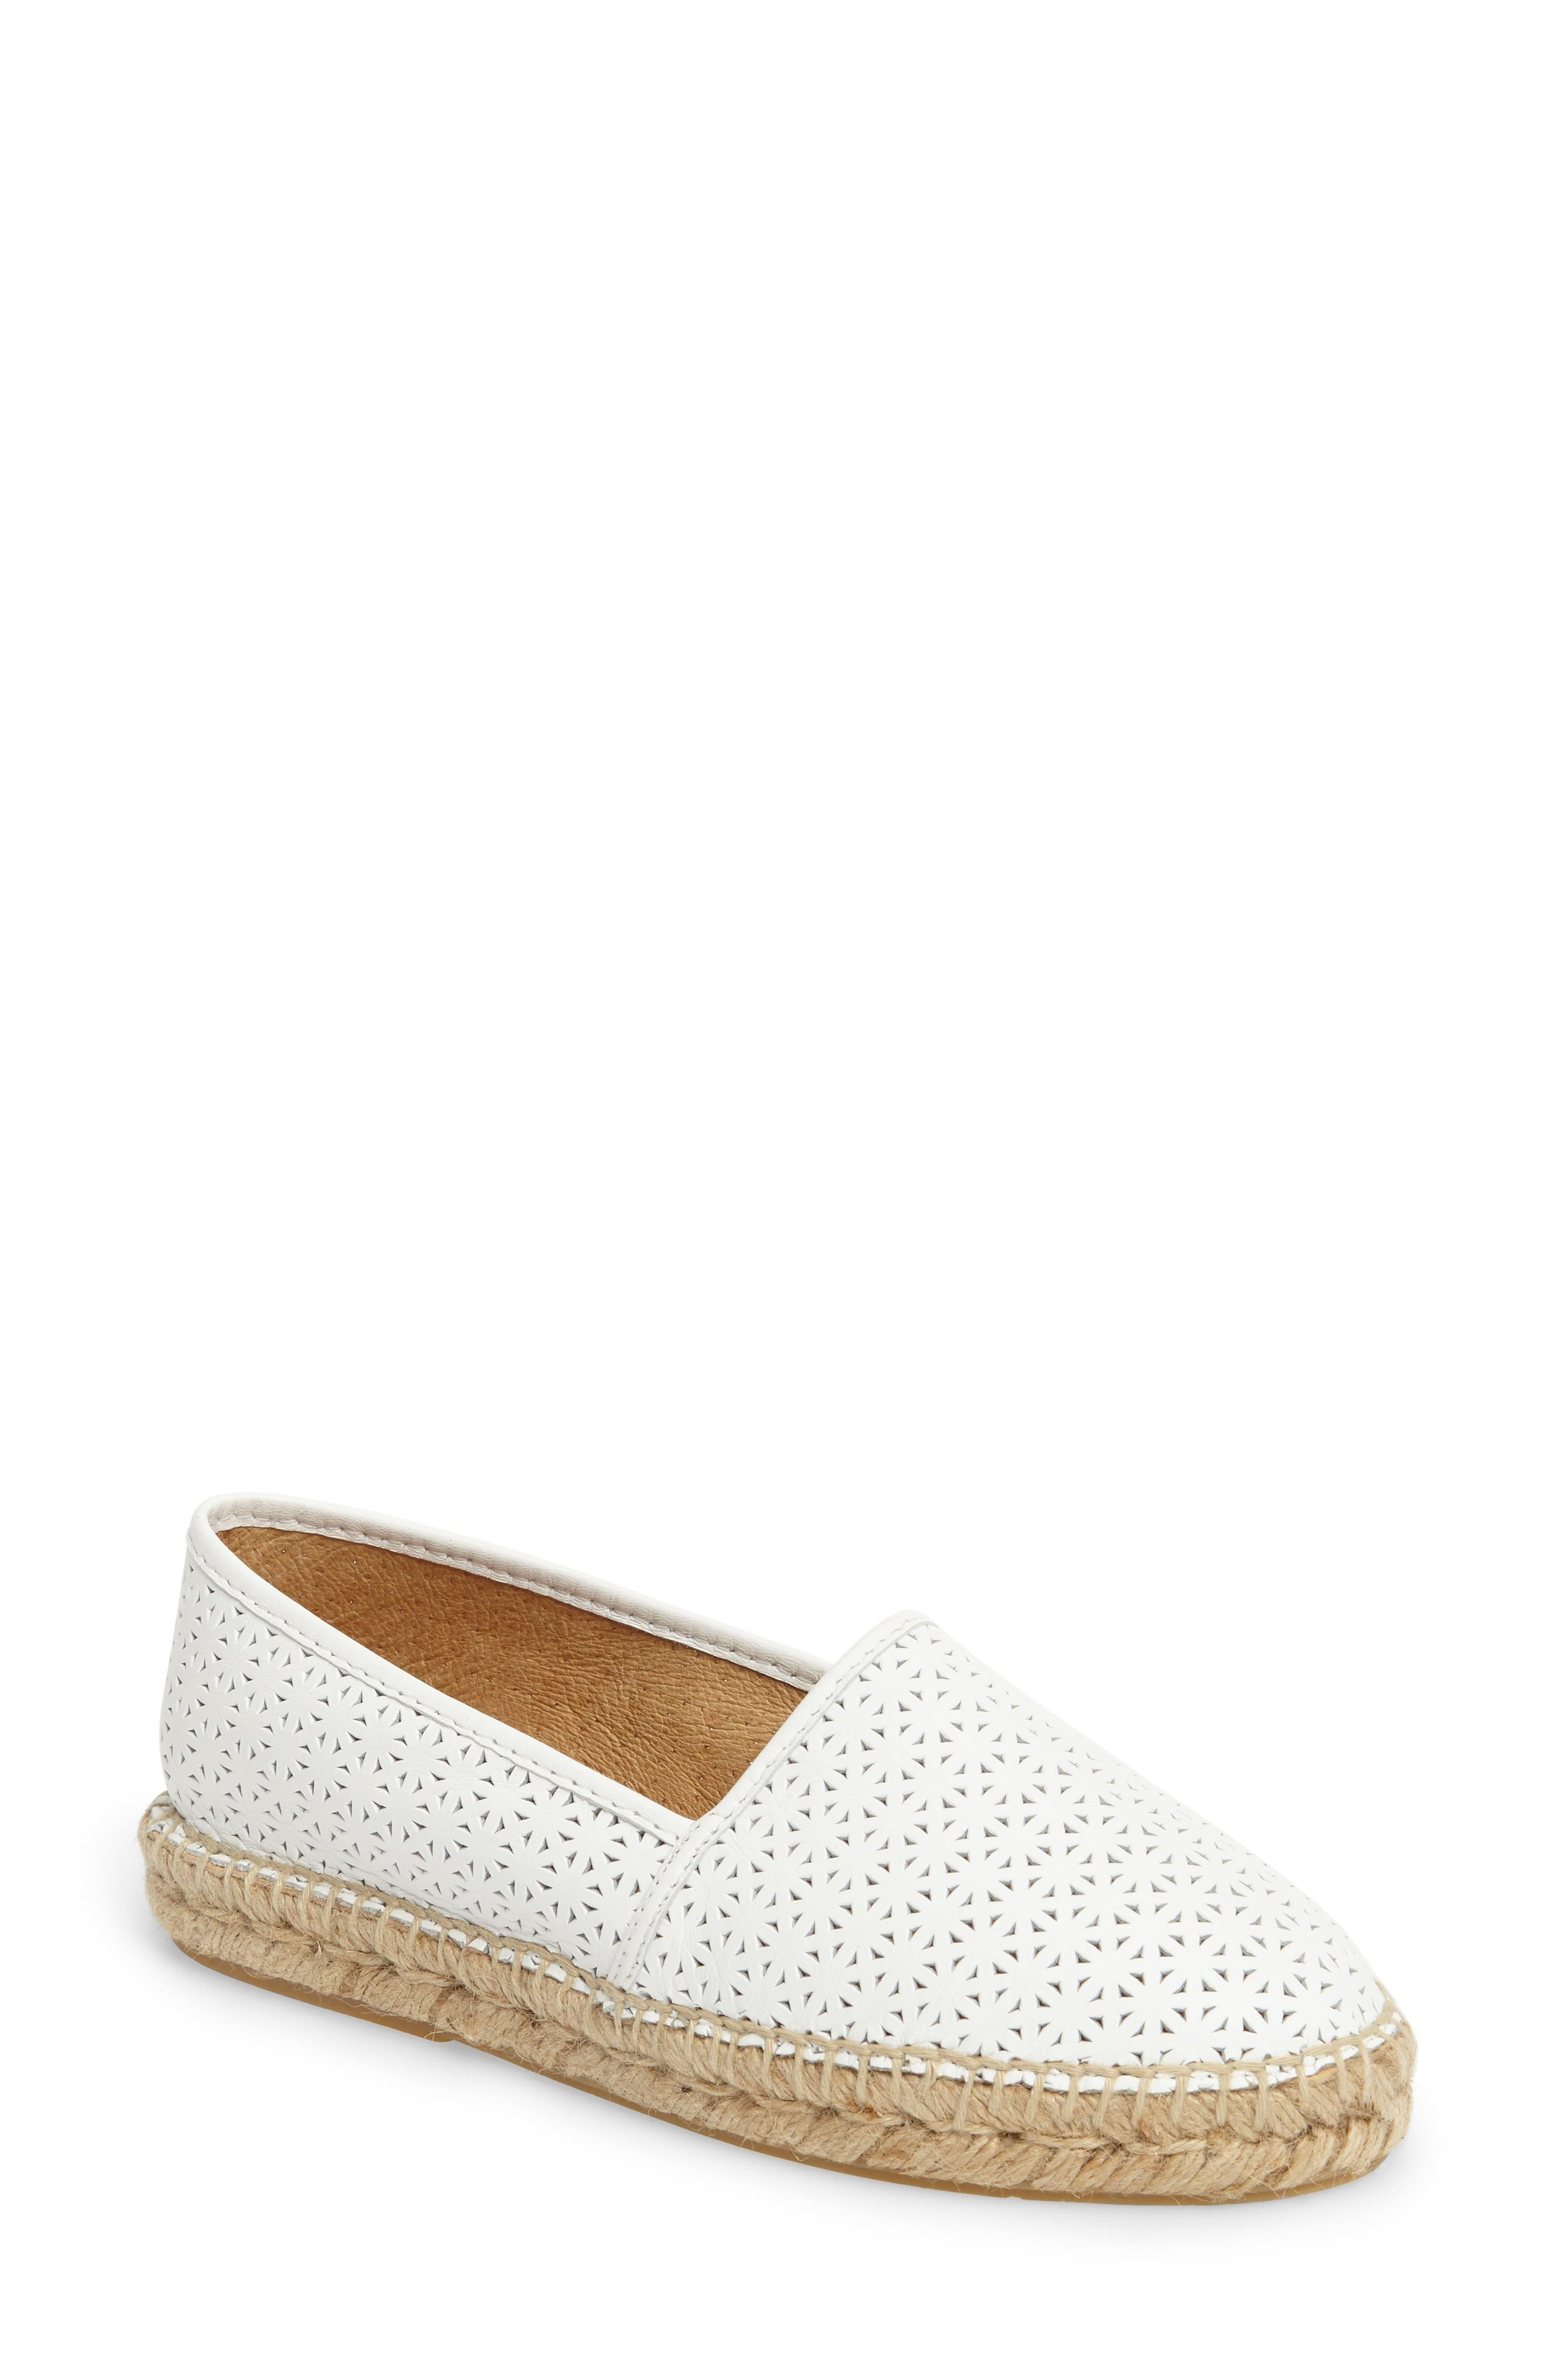 patricia green Anna Perforated Espadrille (Women)